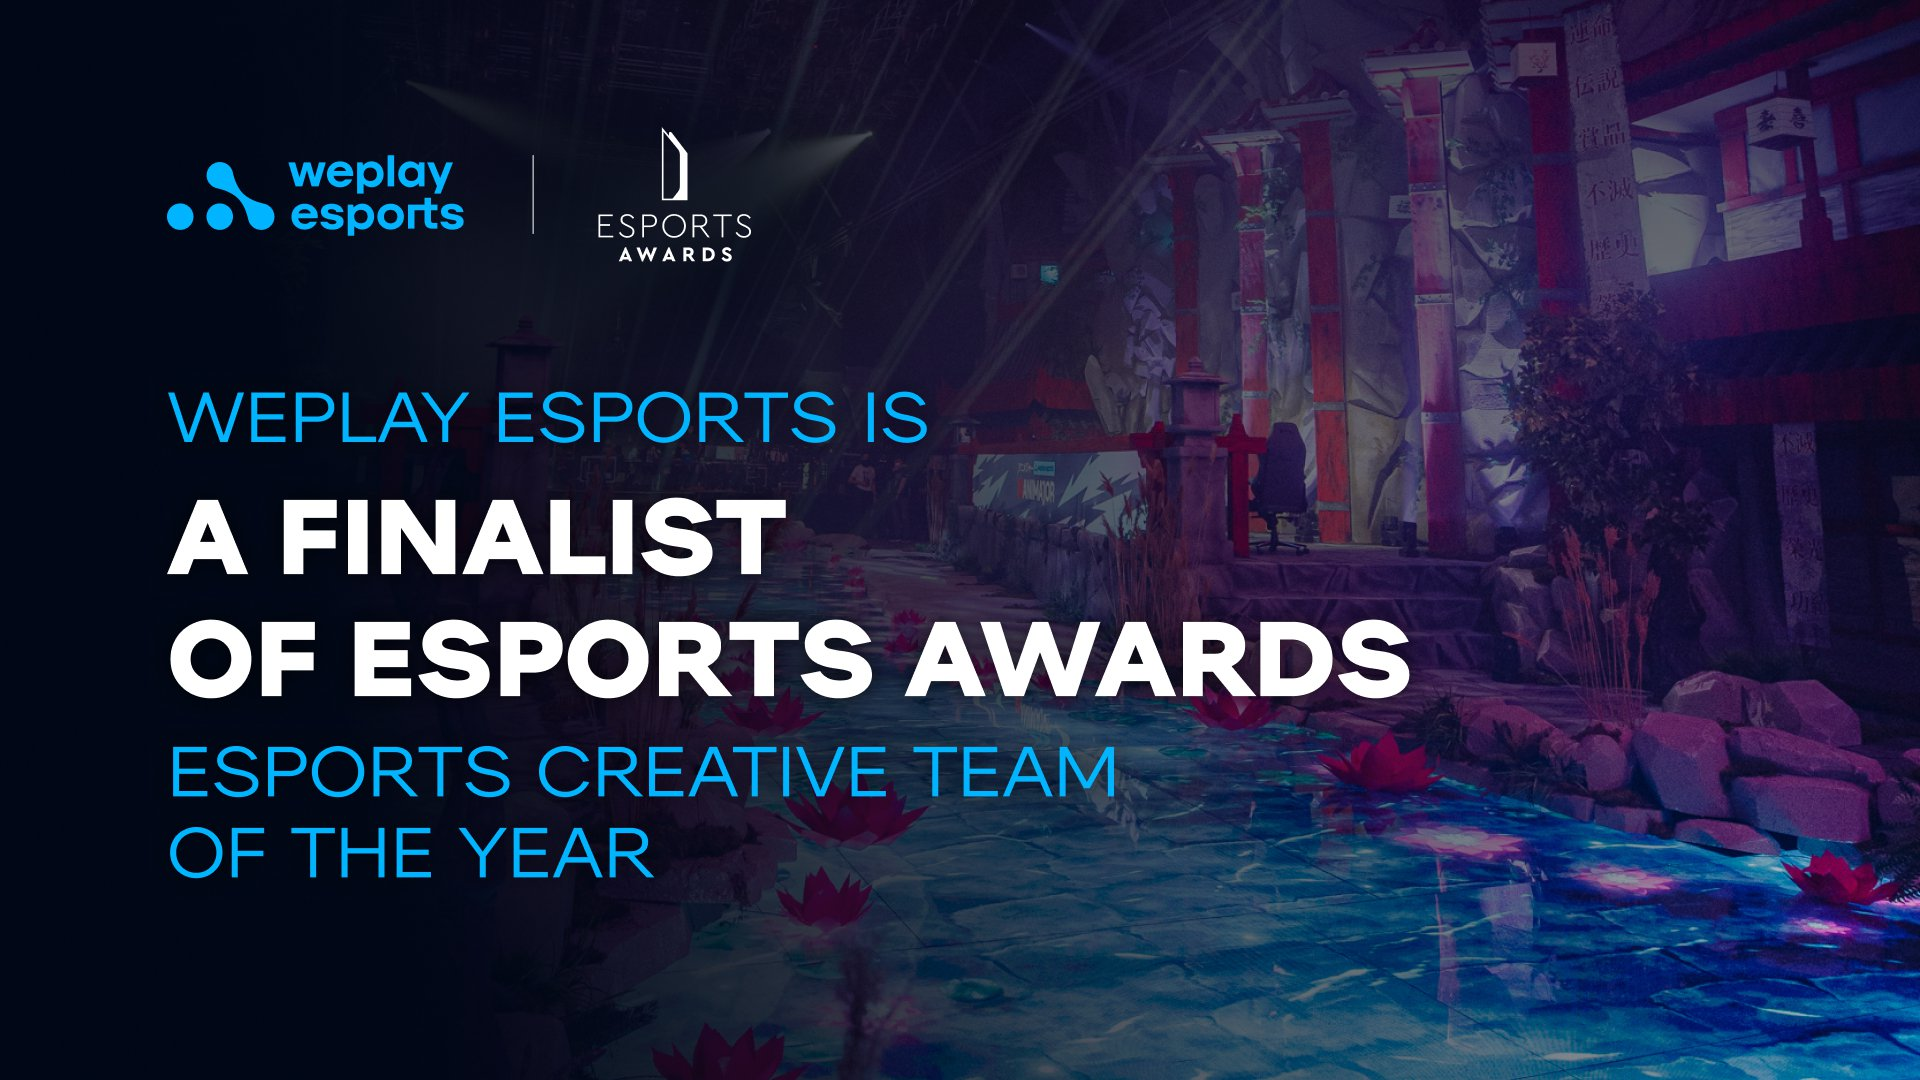 WePlay Esports is a finalist of Esports Awards. Photo: WePlay Holding